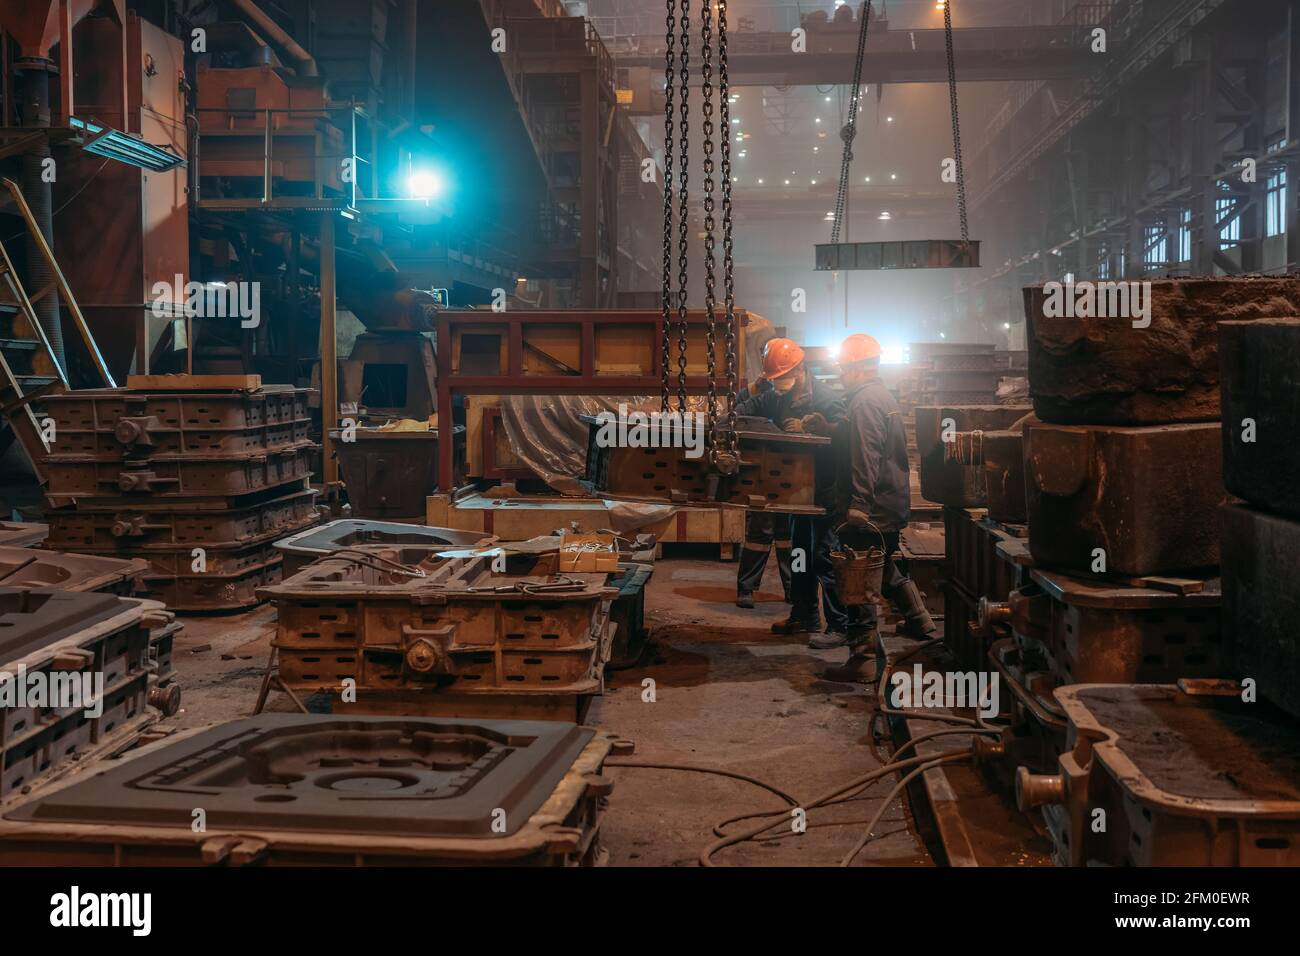 Workers in helmets and face masks works with mold on crane chains after metal casting in steel mill foundry. Stock Photo